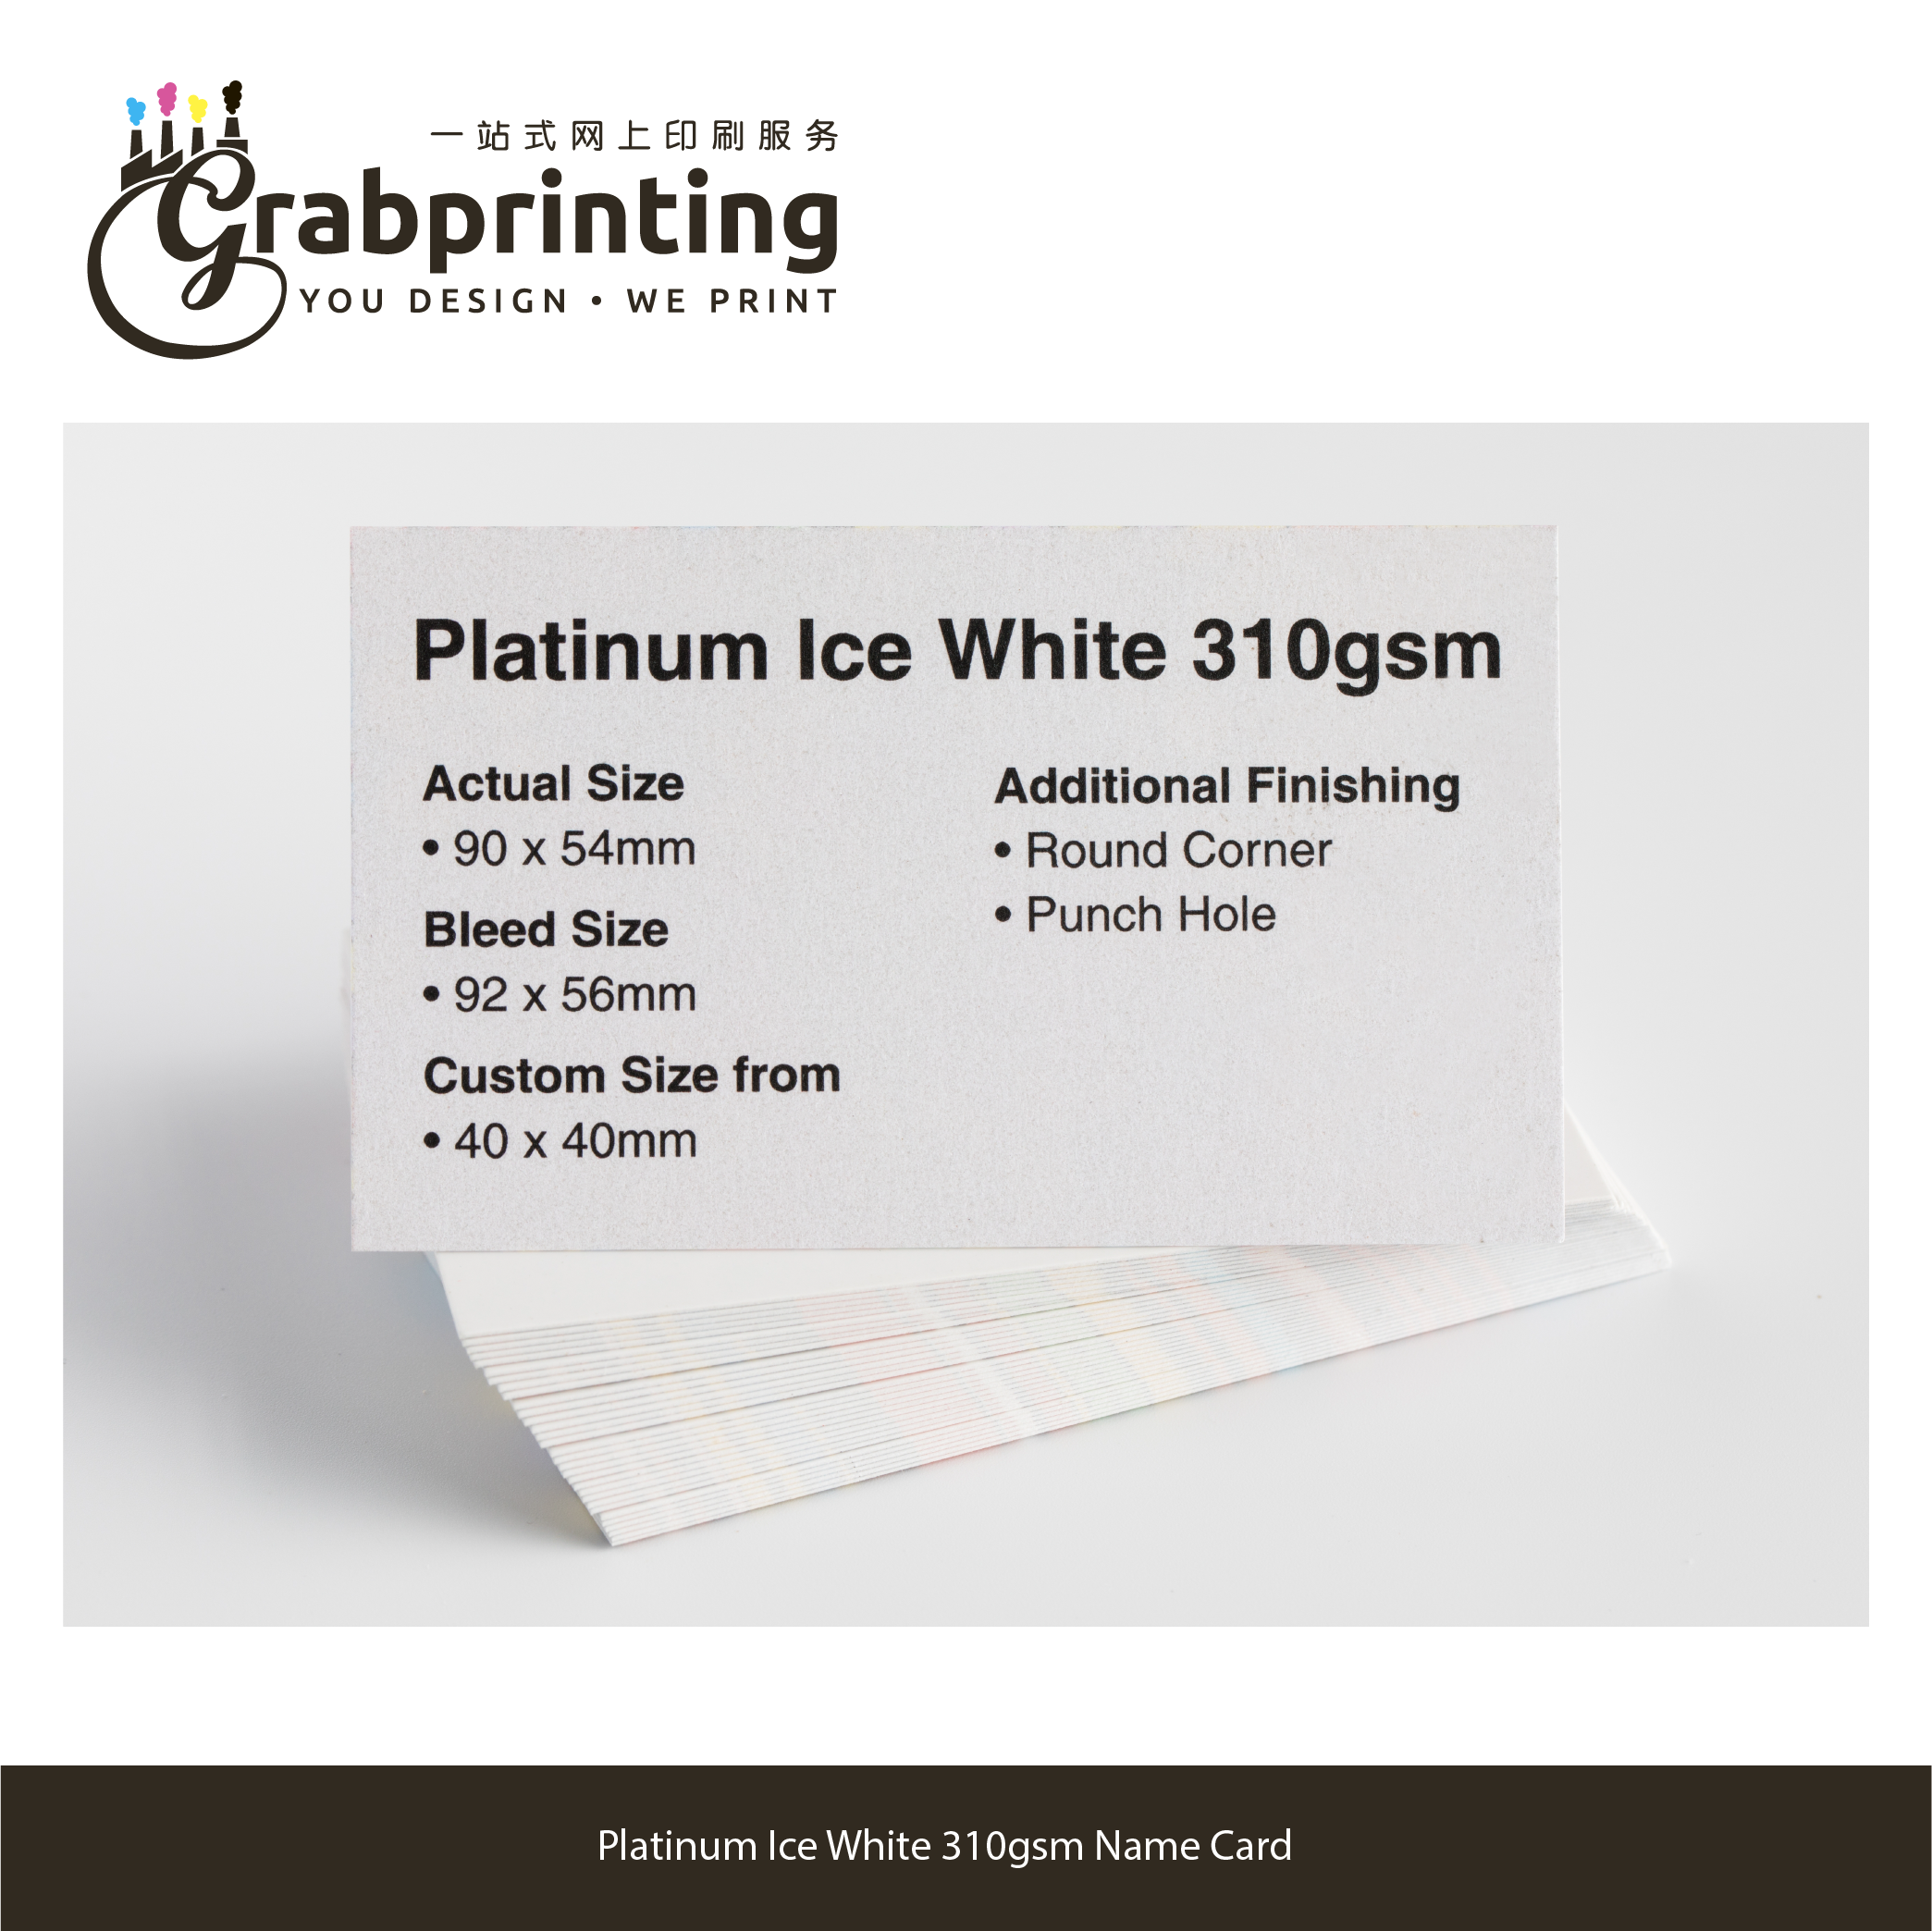 name cards Name Card (23 materials to choose from) grabprinting 34 Platinum Ice White 310gsm Name Card 501px 501px